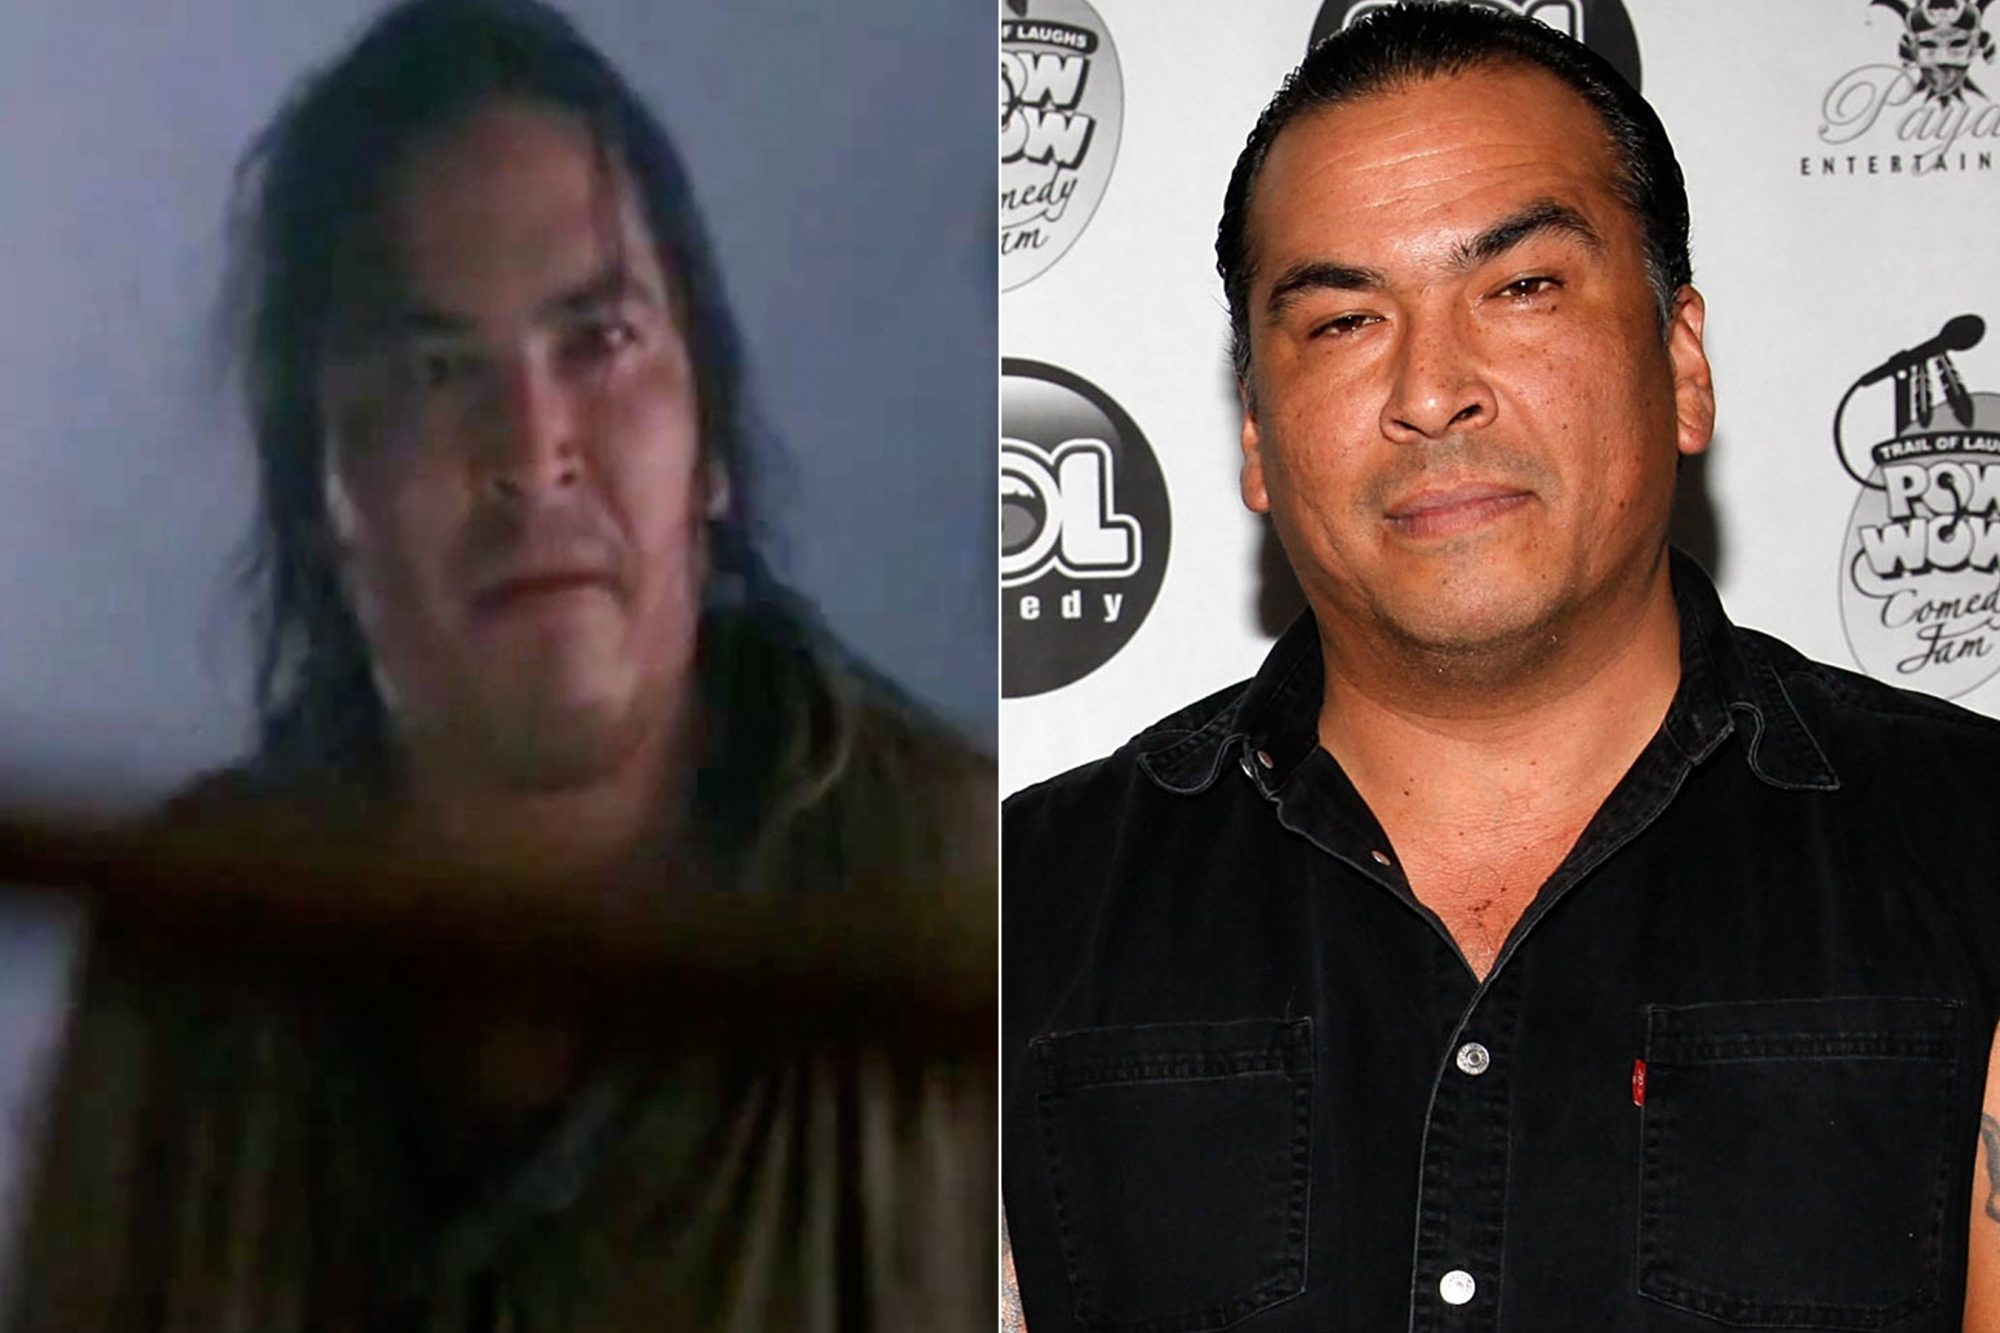 Tom And Huck Where Are They Now Ew Com Made for the talented actor and artist that is eric schweig. tom and huck where are they now ew com